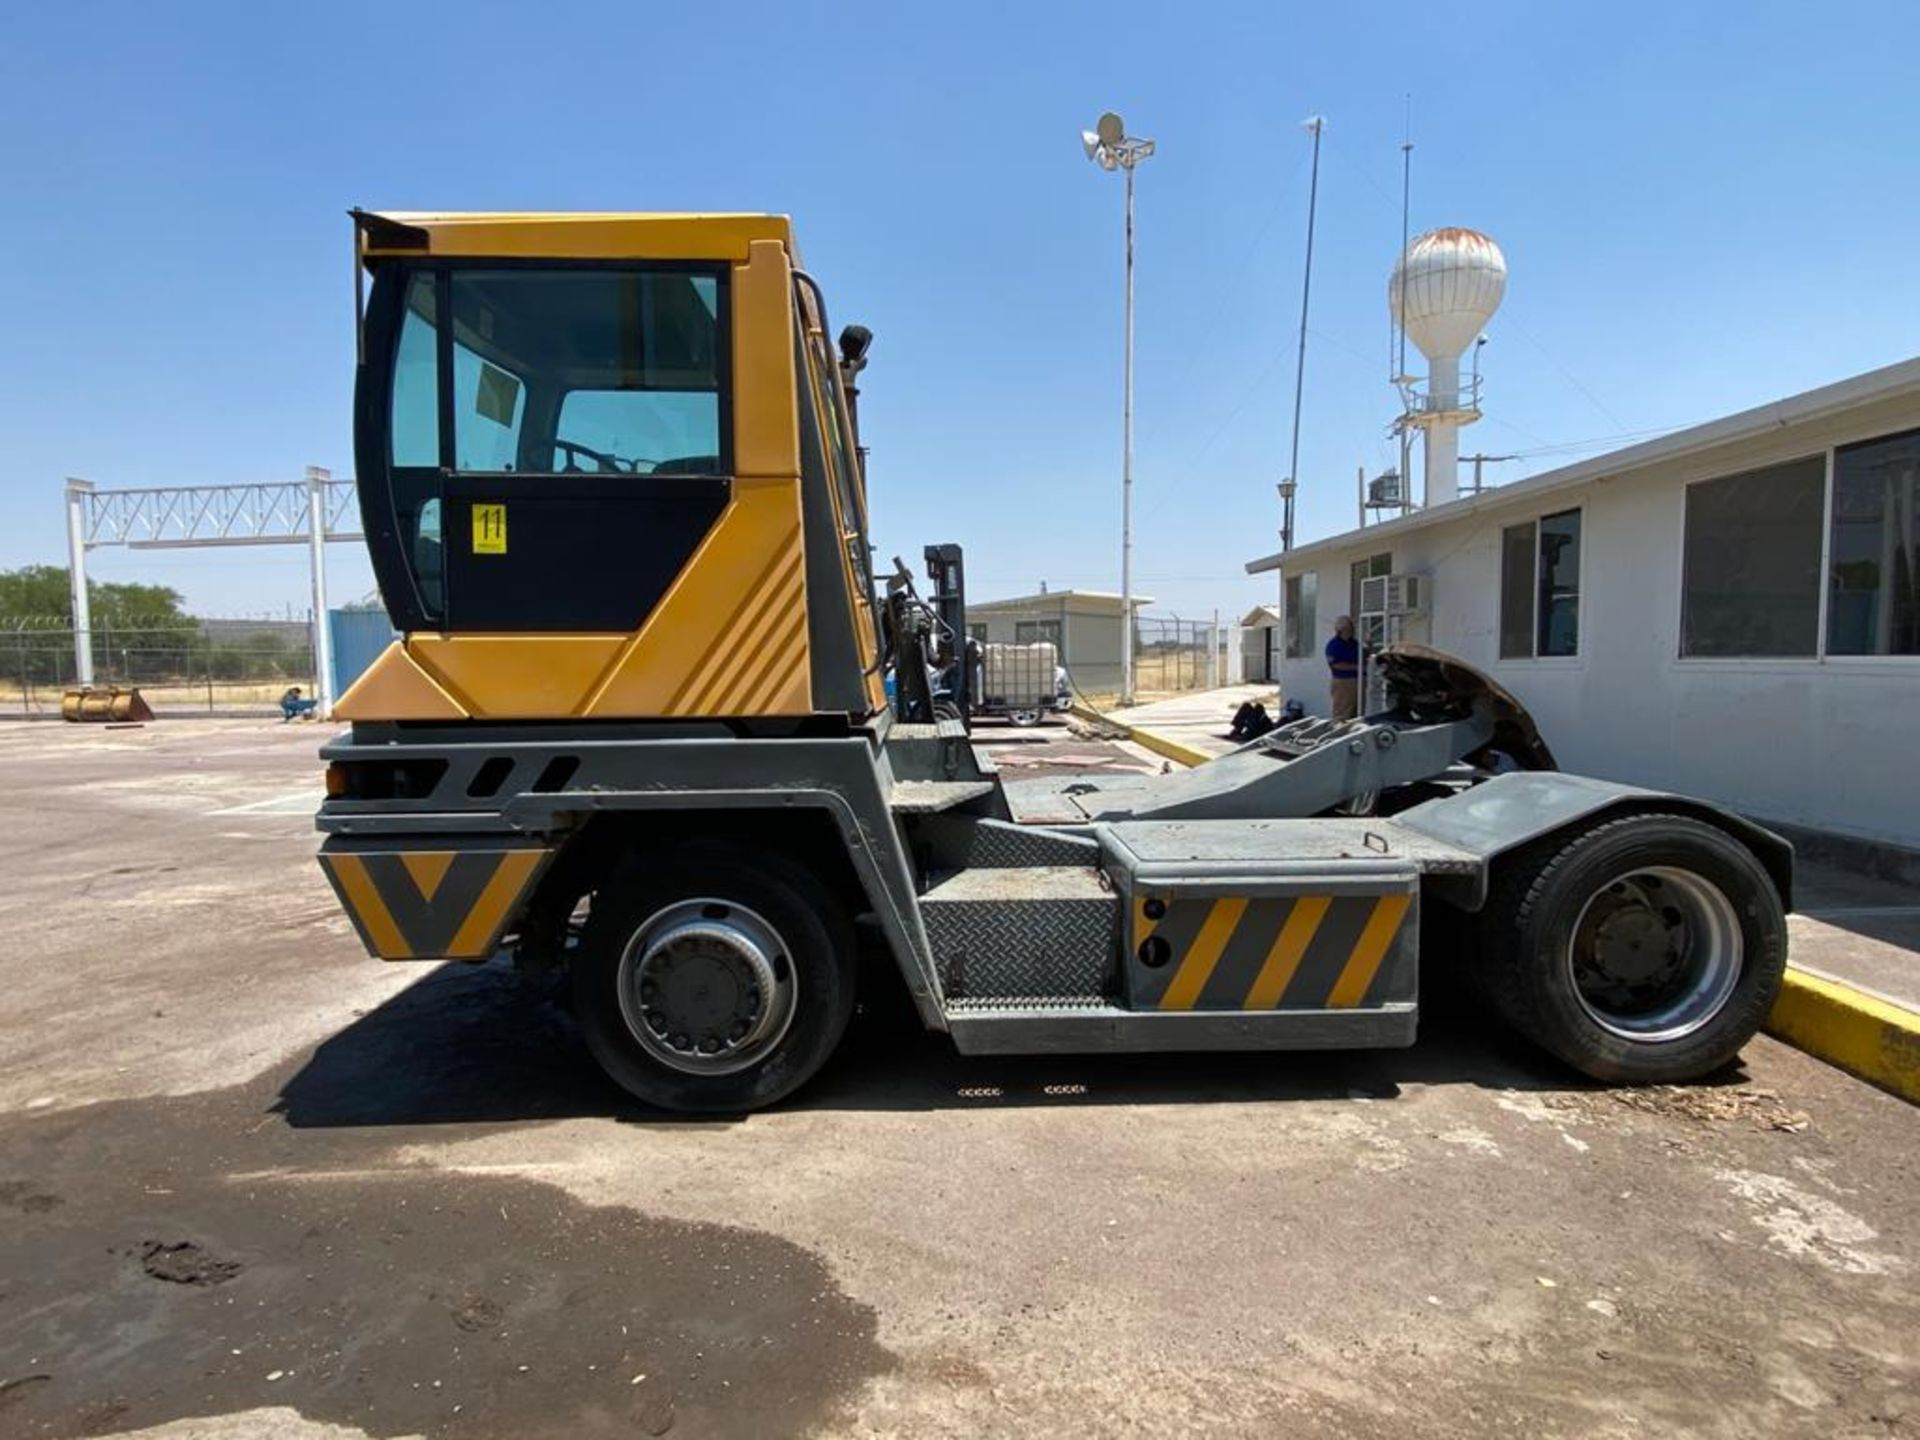 Terberg Capacity 2002 Terminal Tractor, automatic transmission - Image 9 of 57